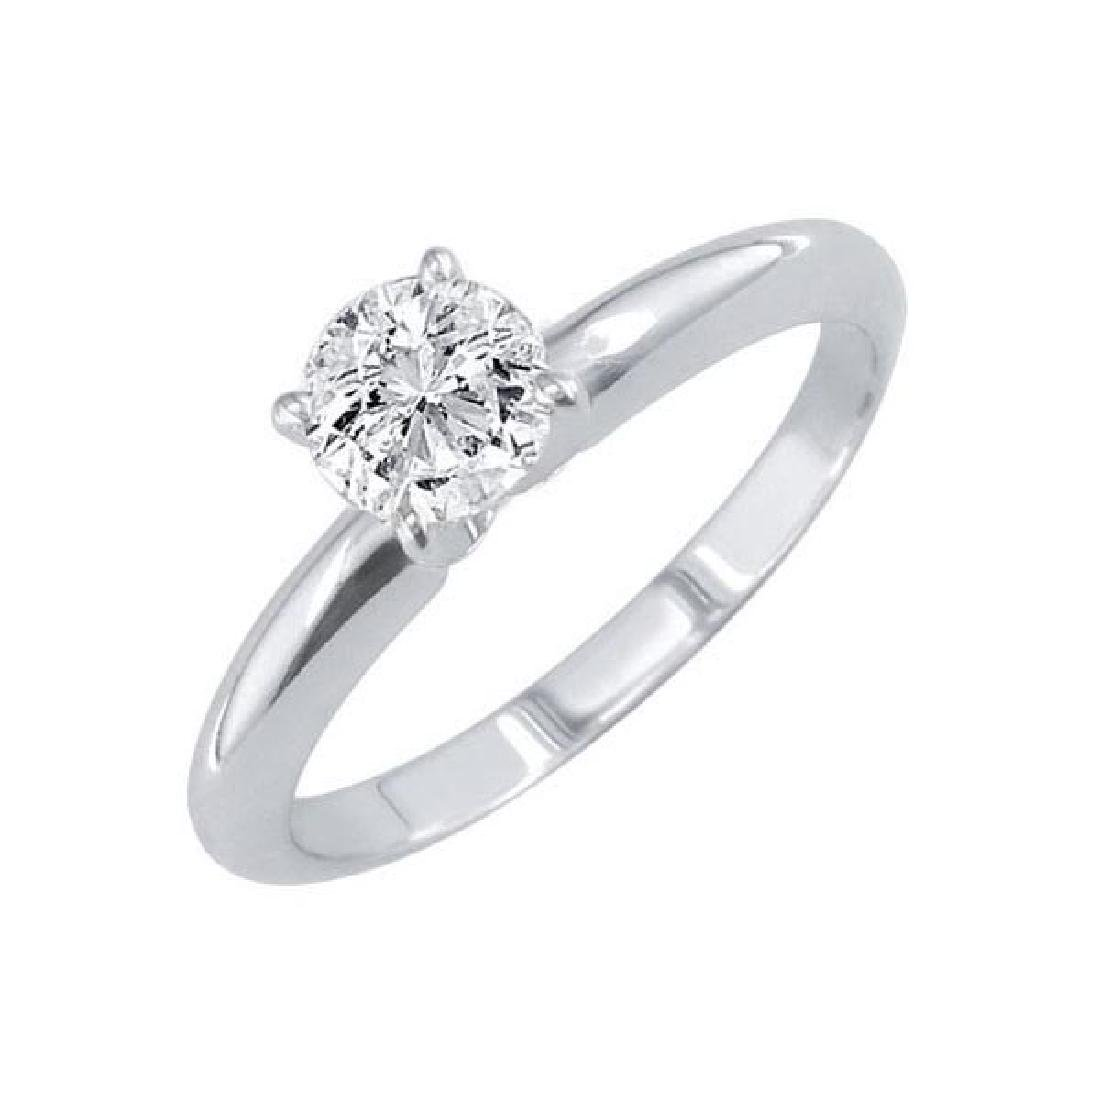 Certified 1.5 CTW Round Diamond Solitaire 14k Ring E/SI